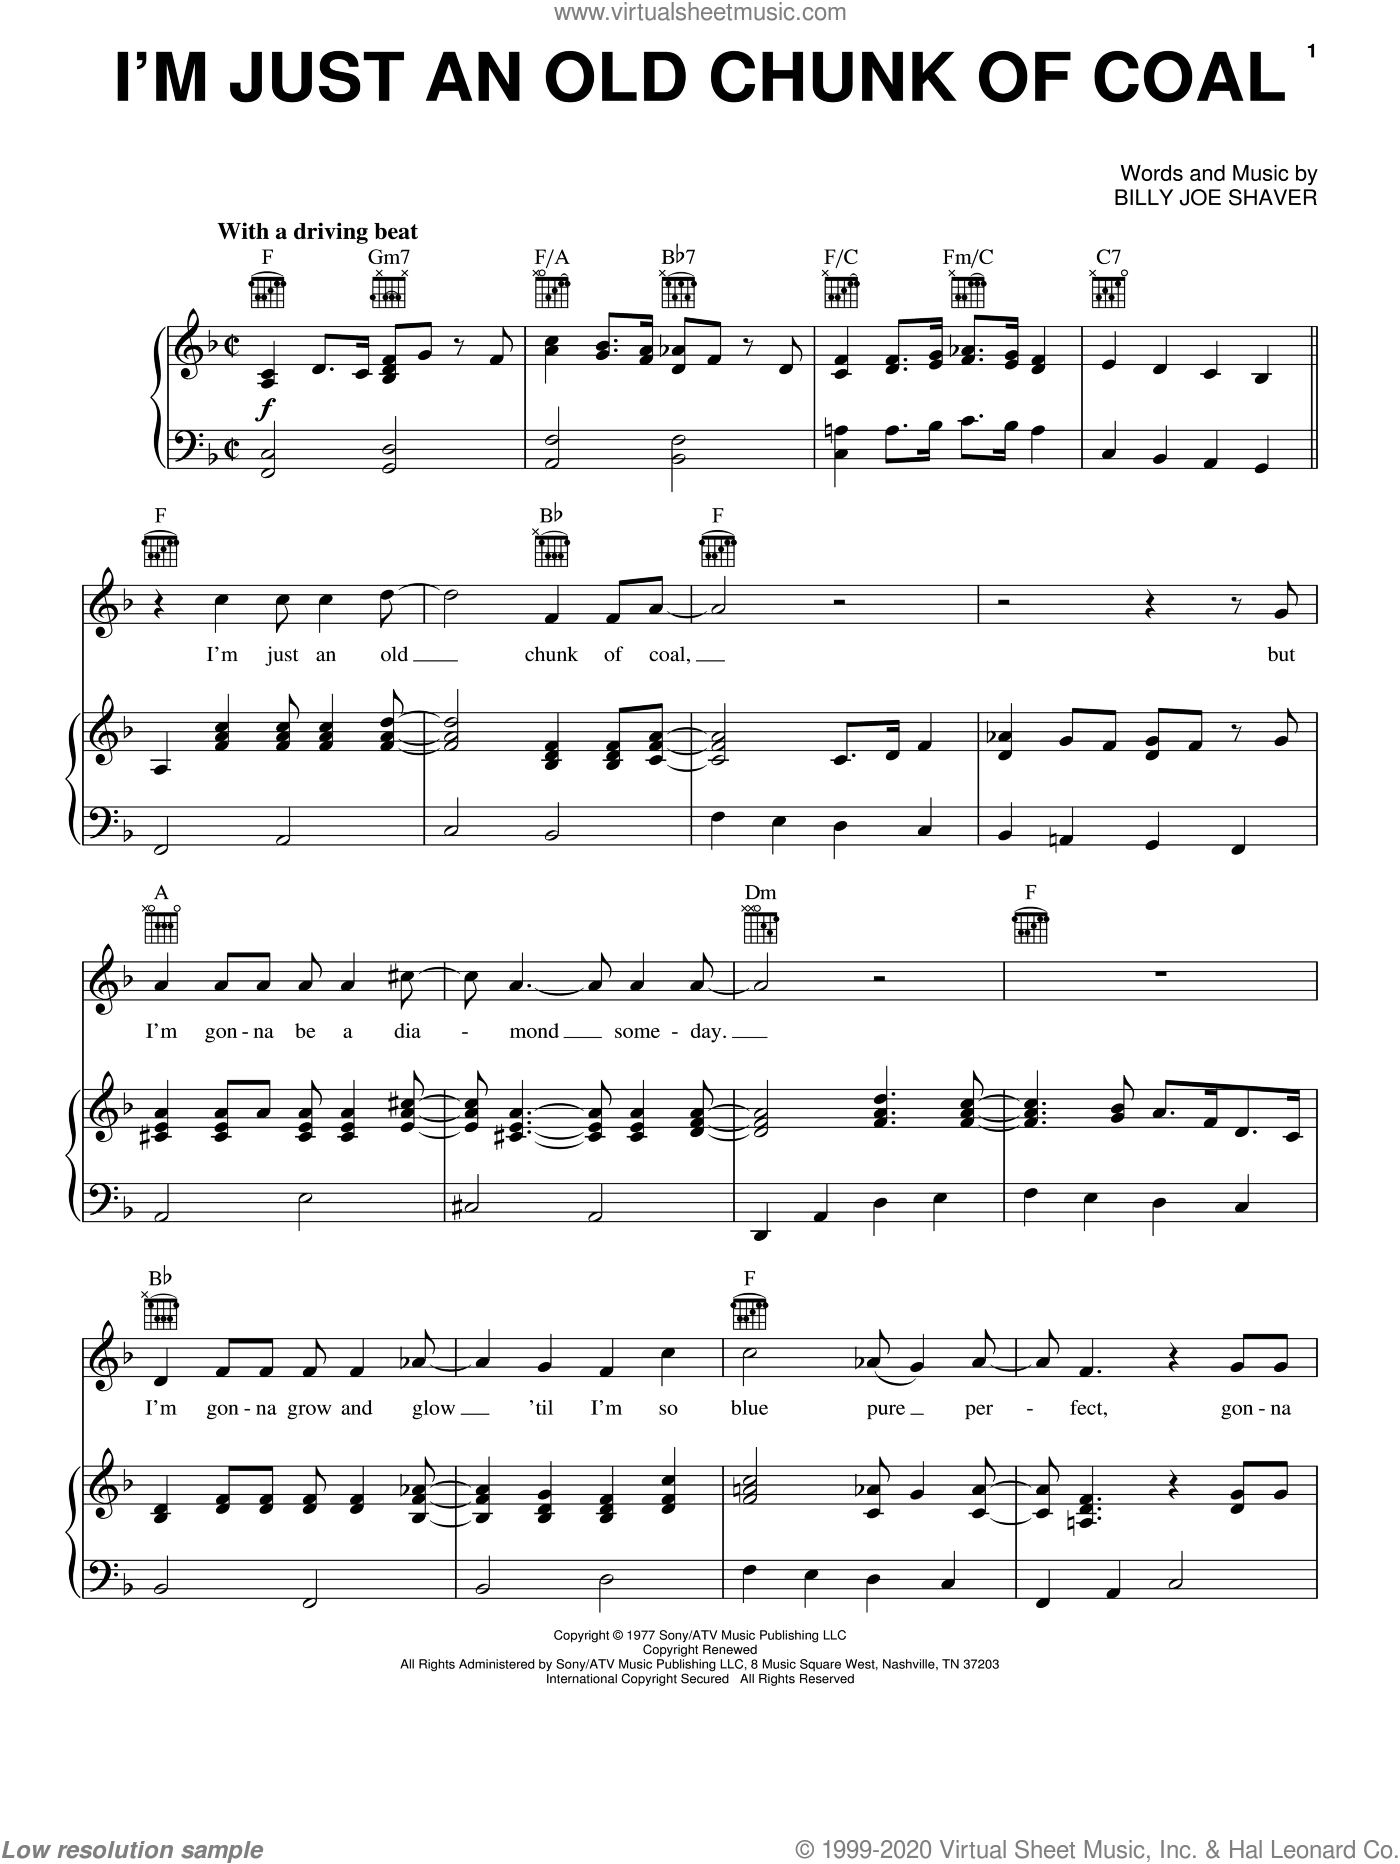 I'm Just An Old Chunk Of Coal sheet music for voice, piano or guitar by Billy Joe Shaver